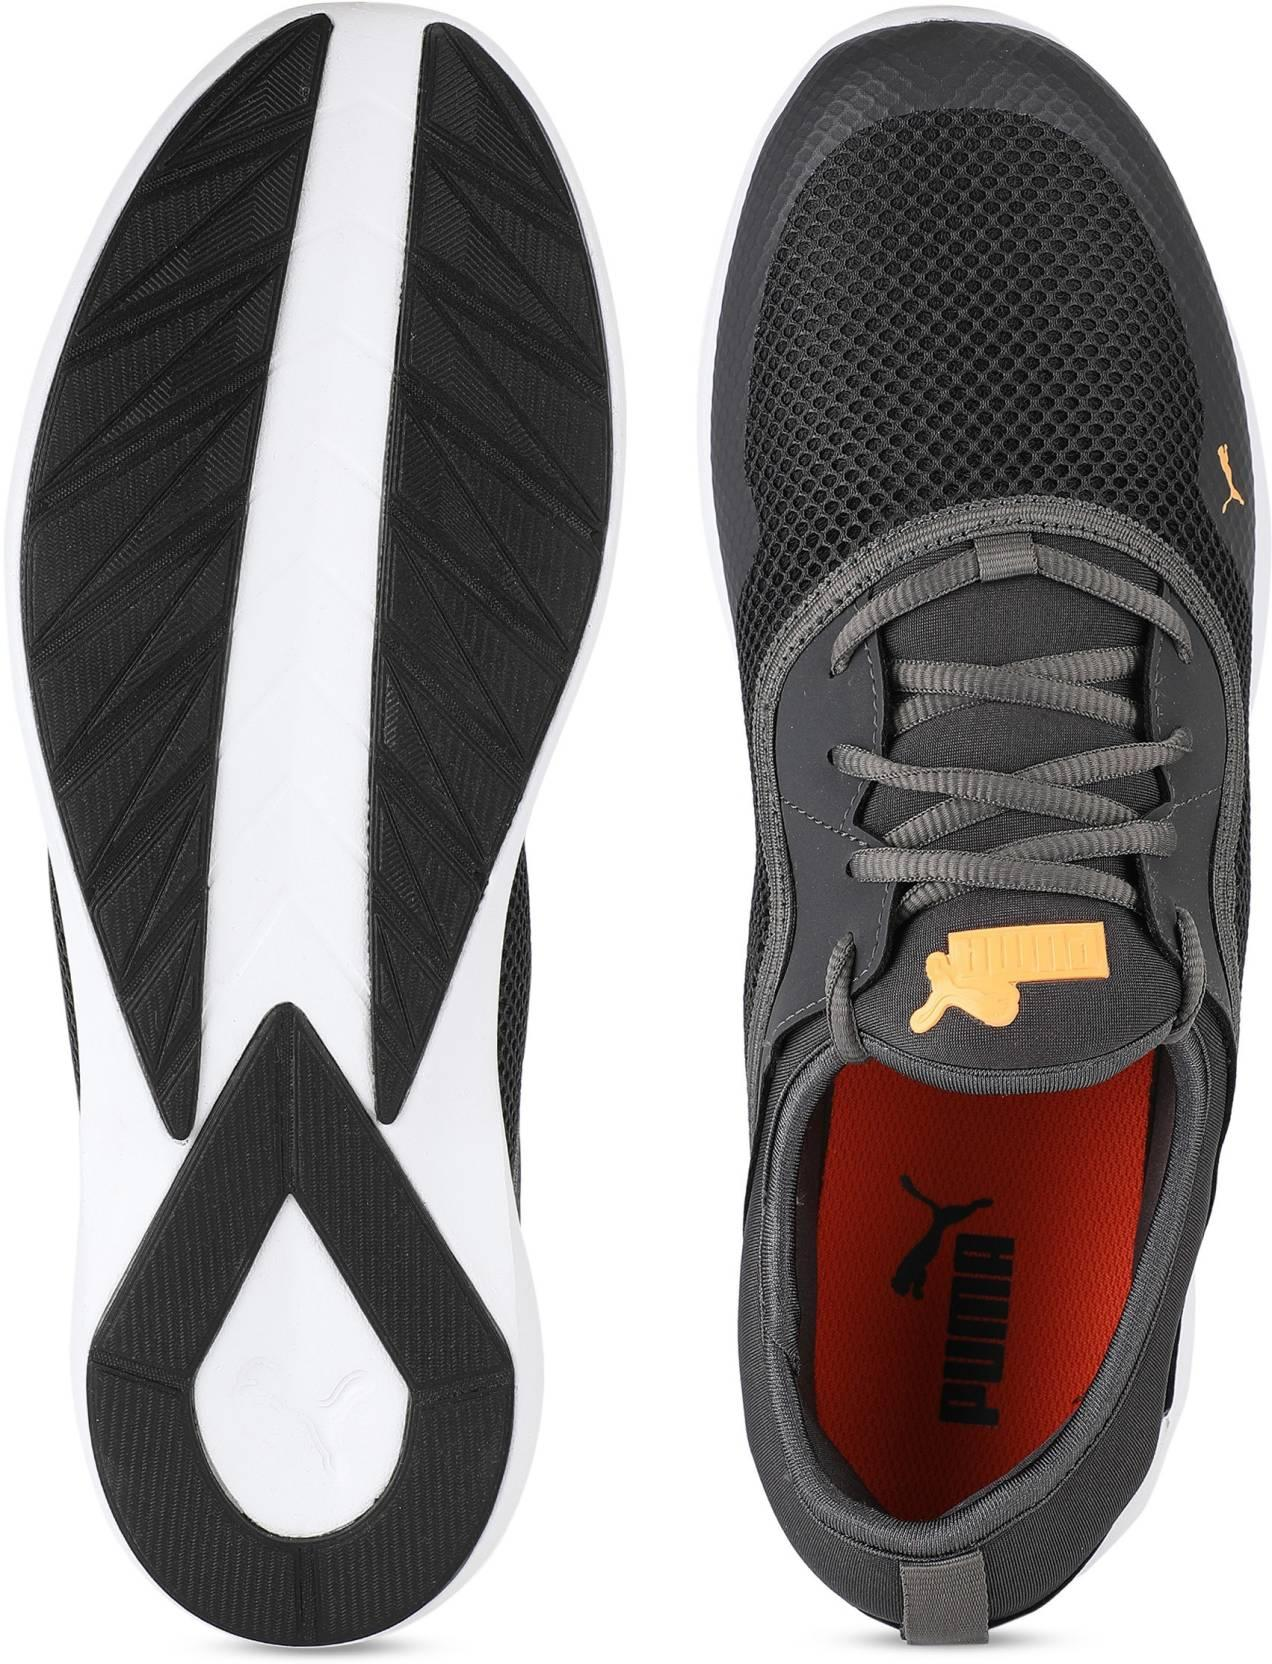 Puma Shoes Price List in India on 24